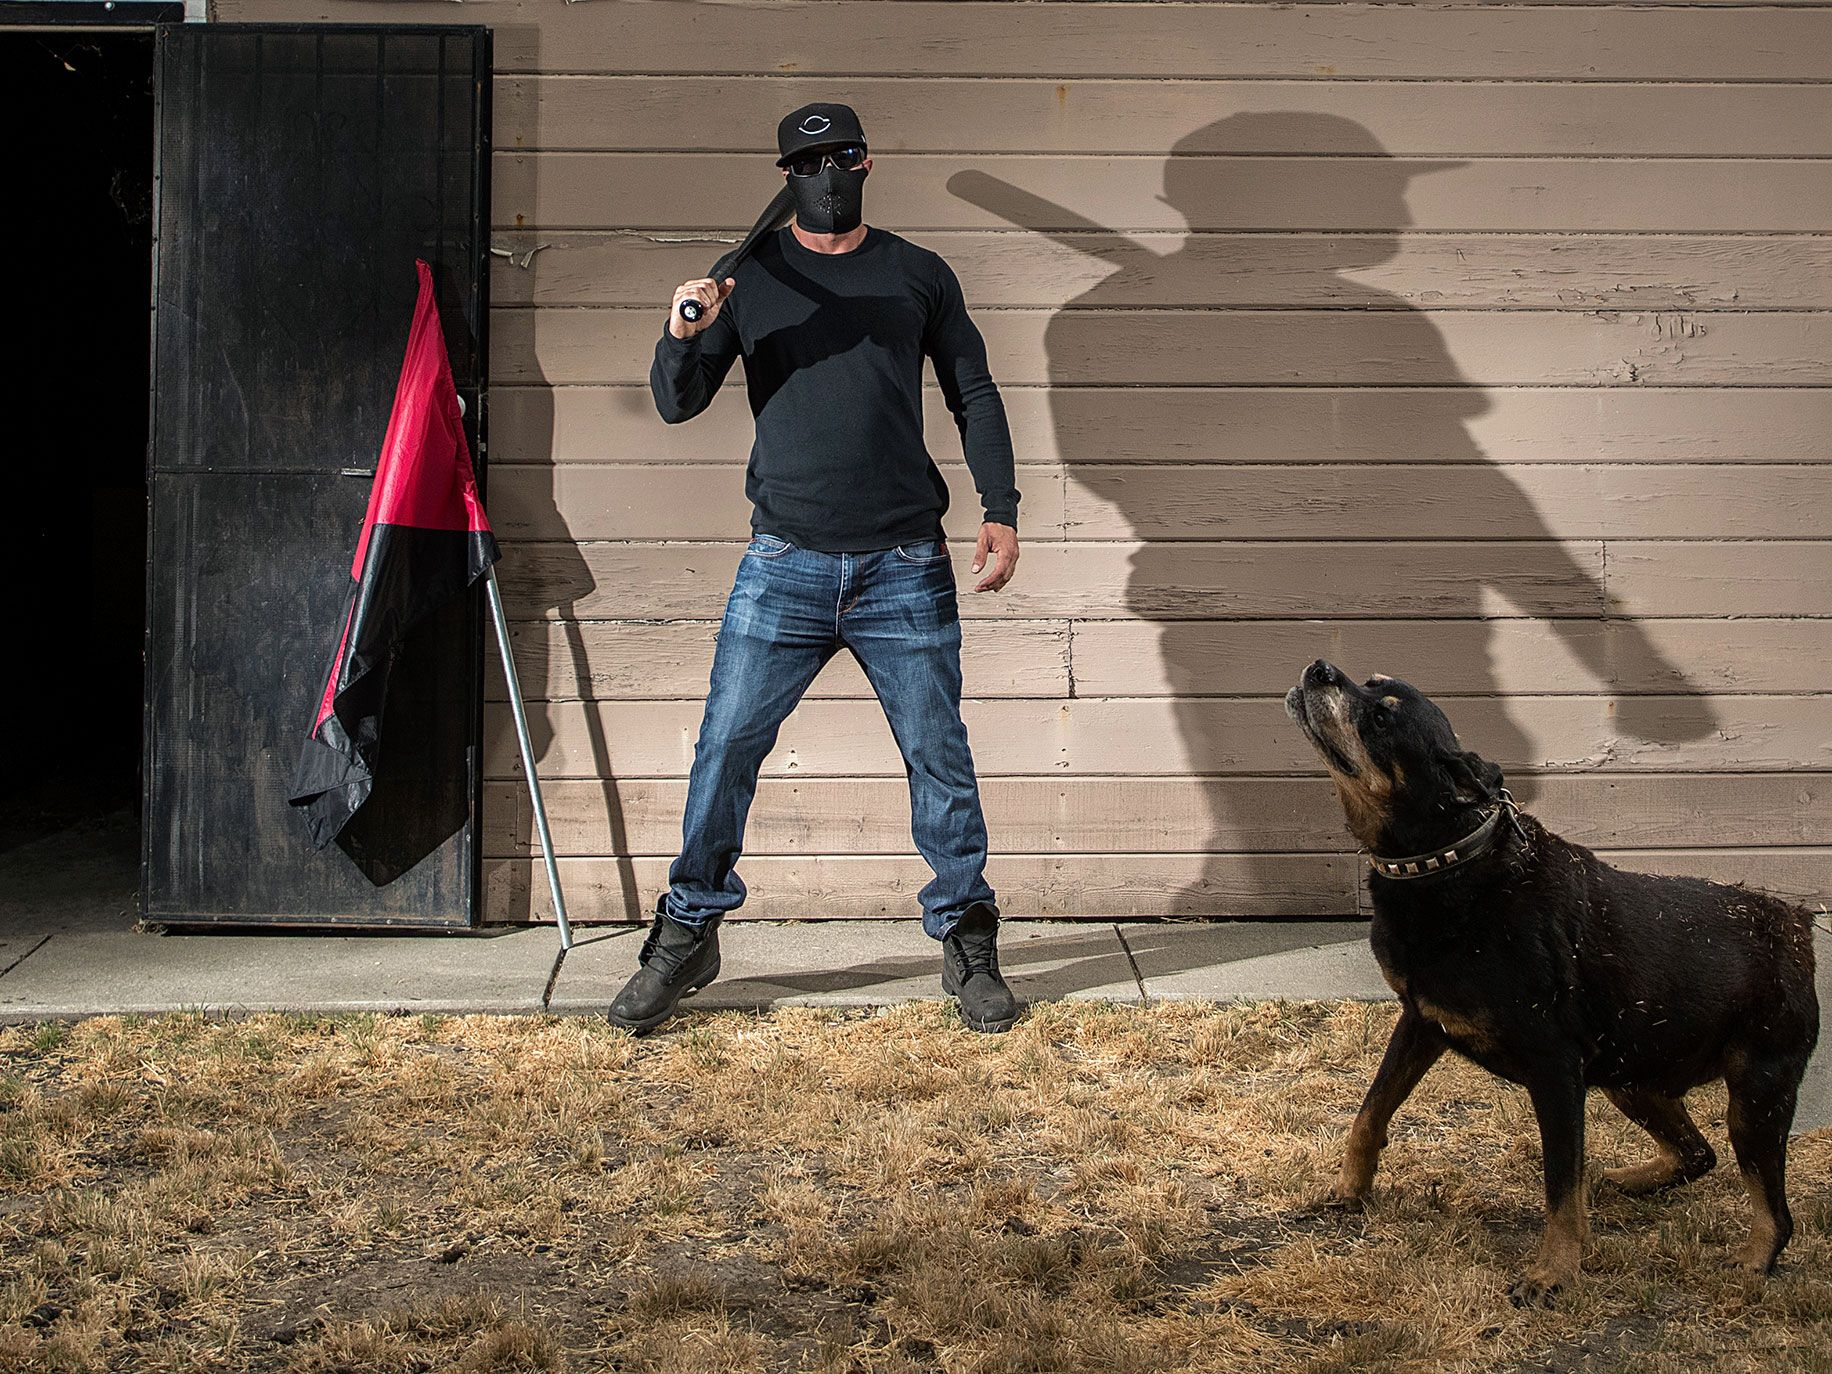 """Dominic,"" a member of the Bay Area antifa, says he's been ""fighting Nazis"" for 20 years."